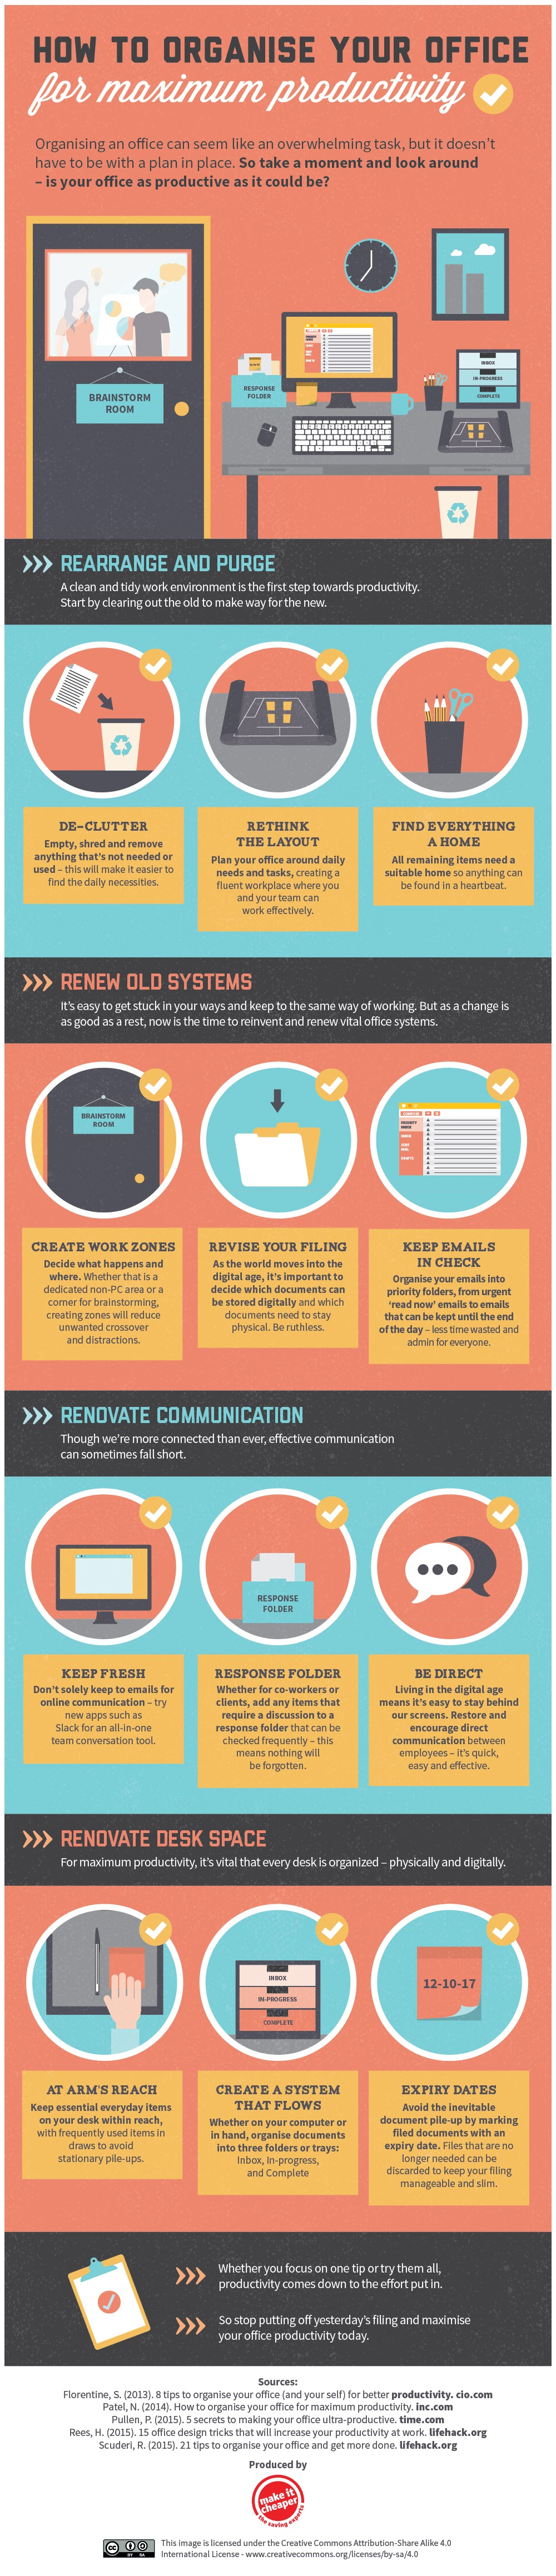 Organising your office for ultimate productivity [Infographic]